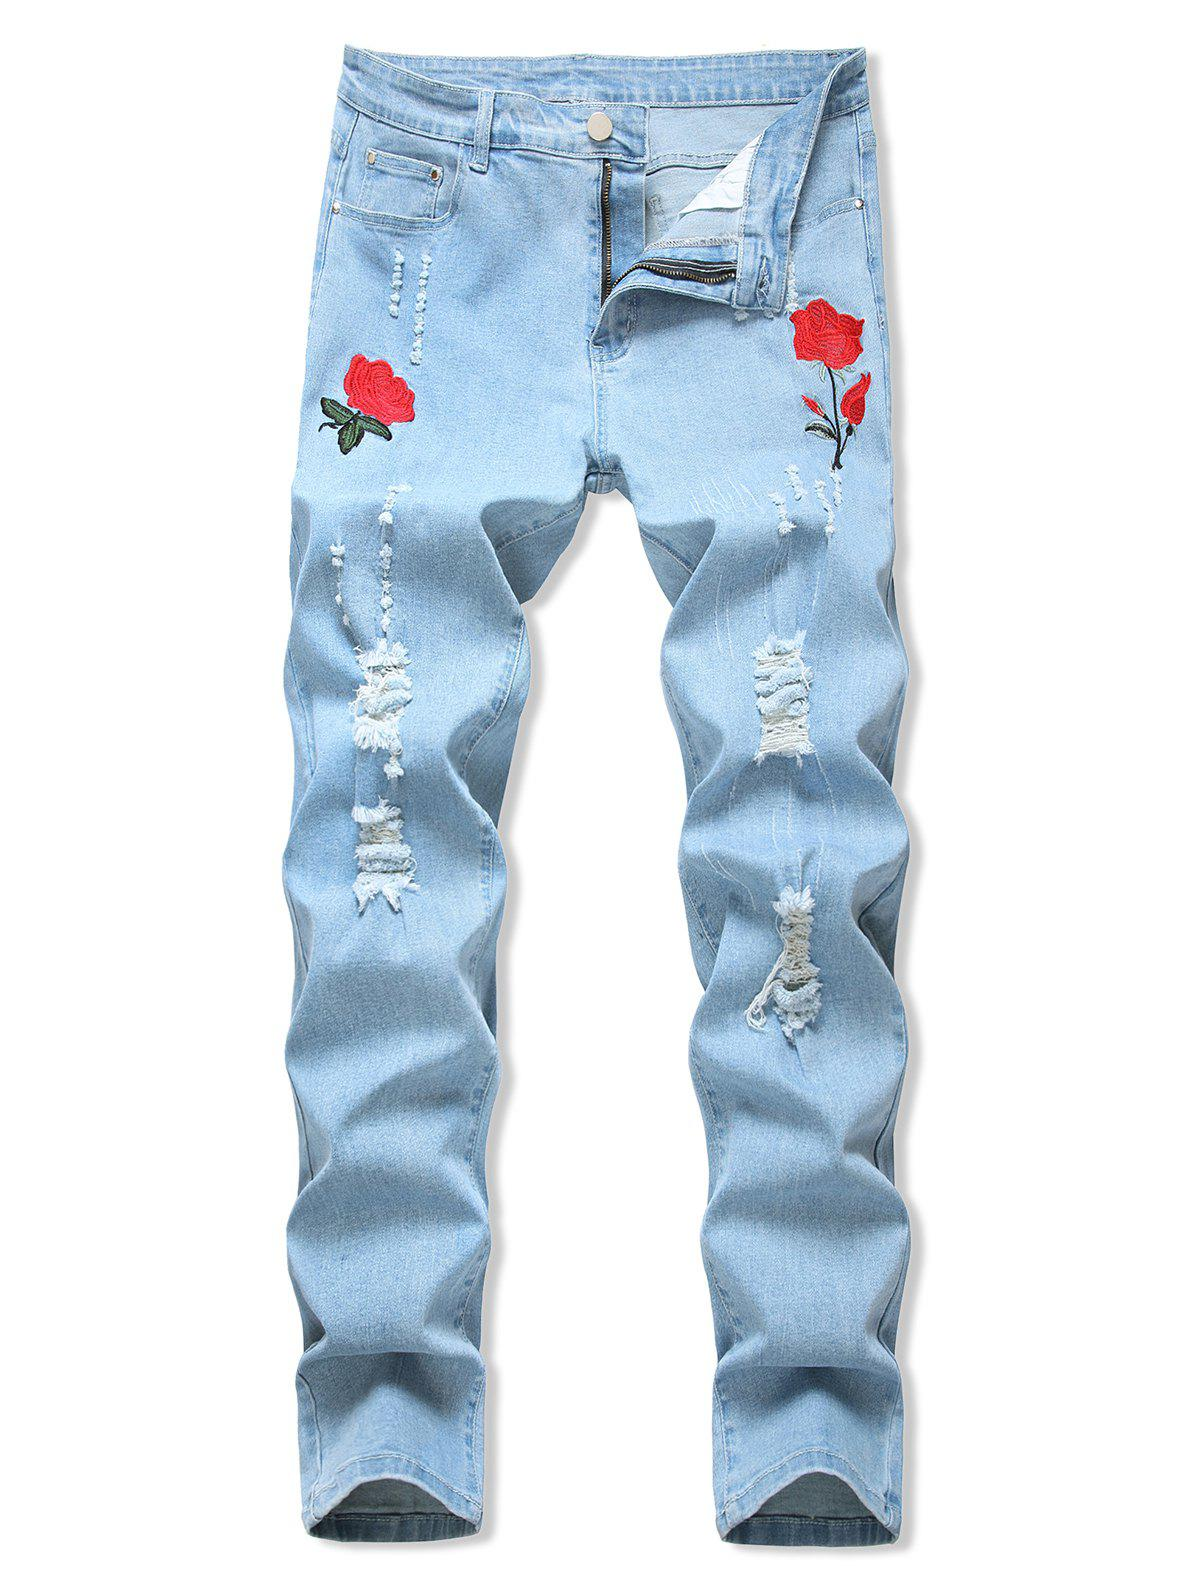 New Floral Embroidery Ripped Design Jeans